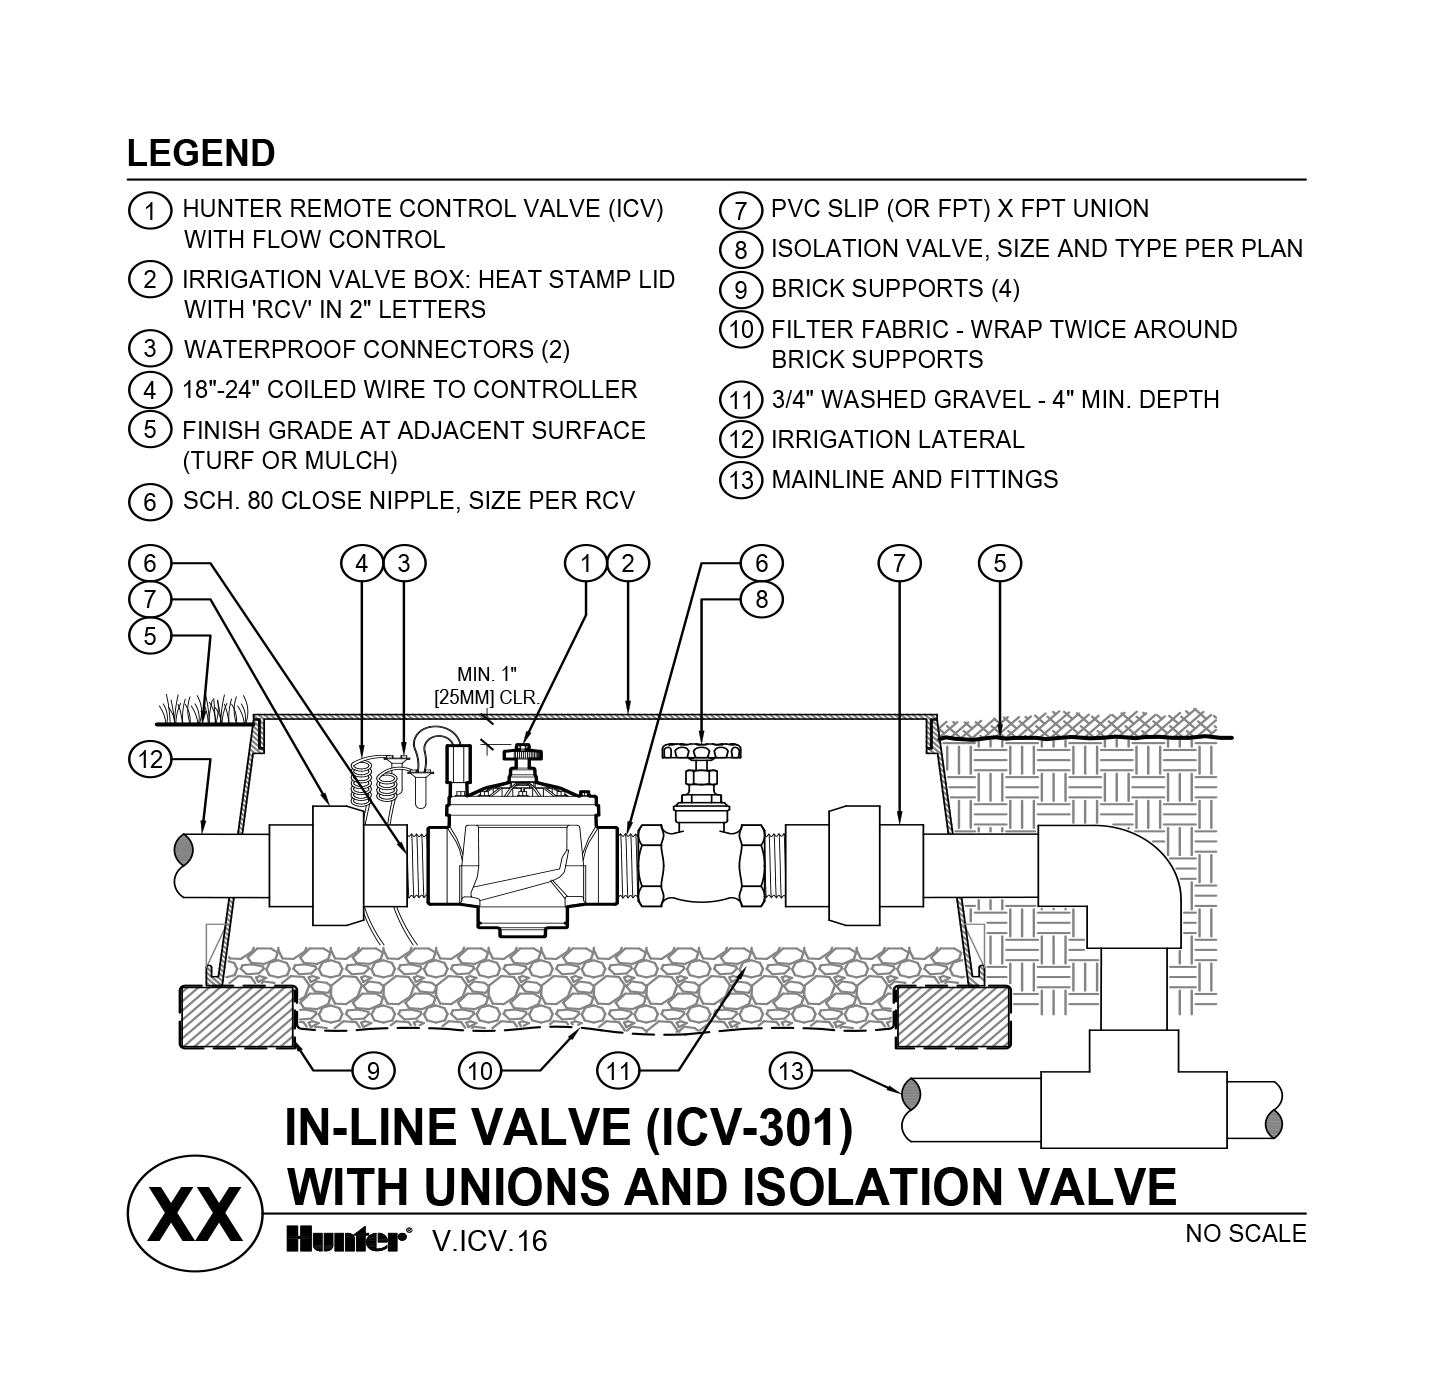 CAD - ICV-301G with unions and isolation valves